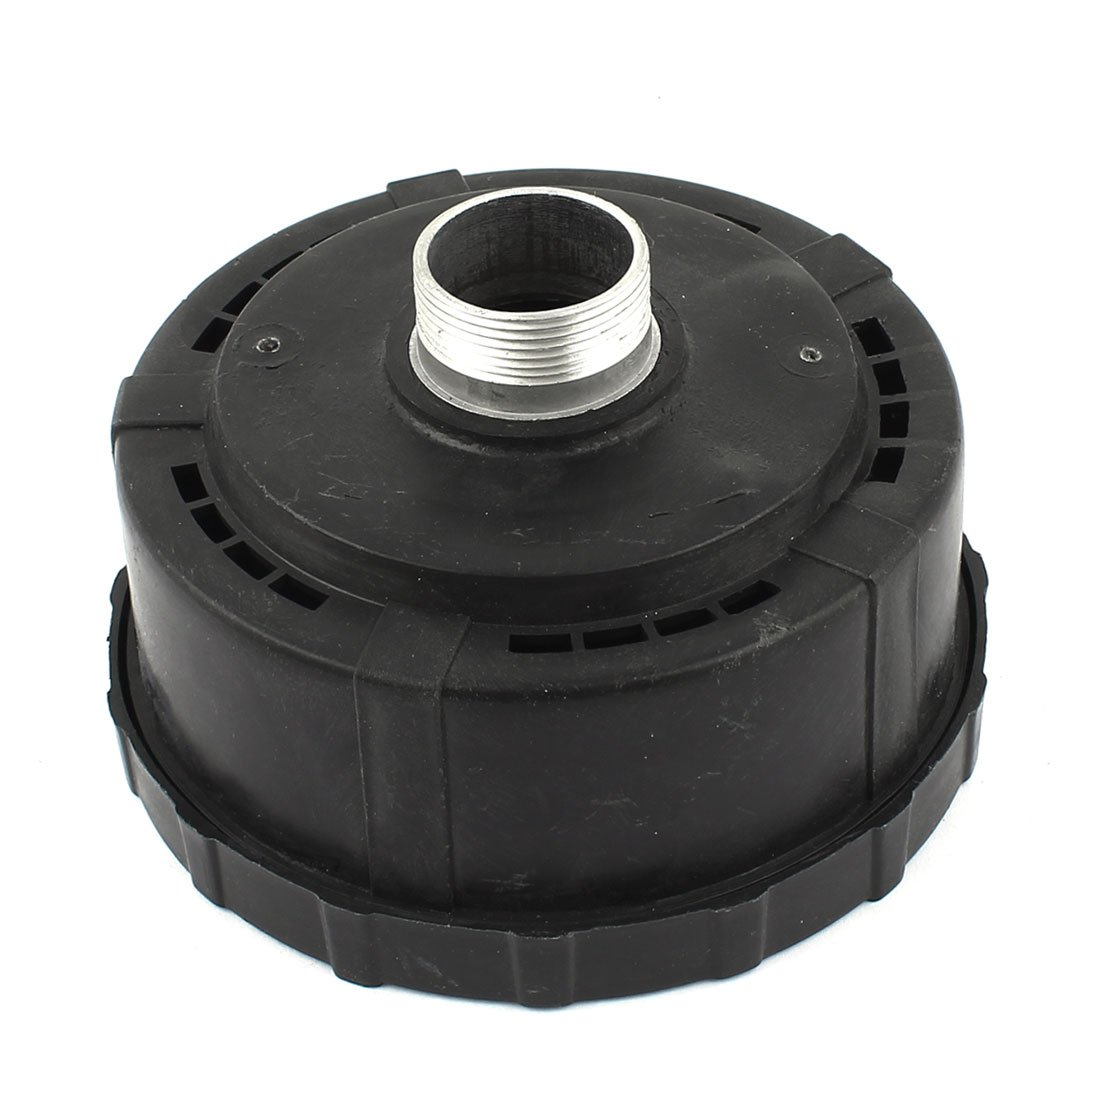 Black Plastic Housing 1BSP Air Compressor Intake Filter Silencer uxcell a14112900ux0119